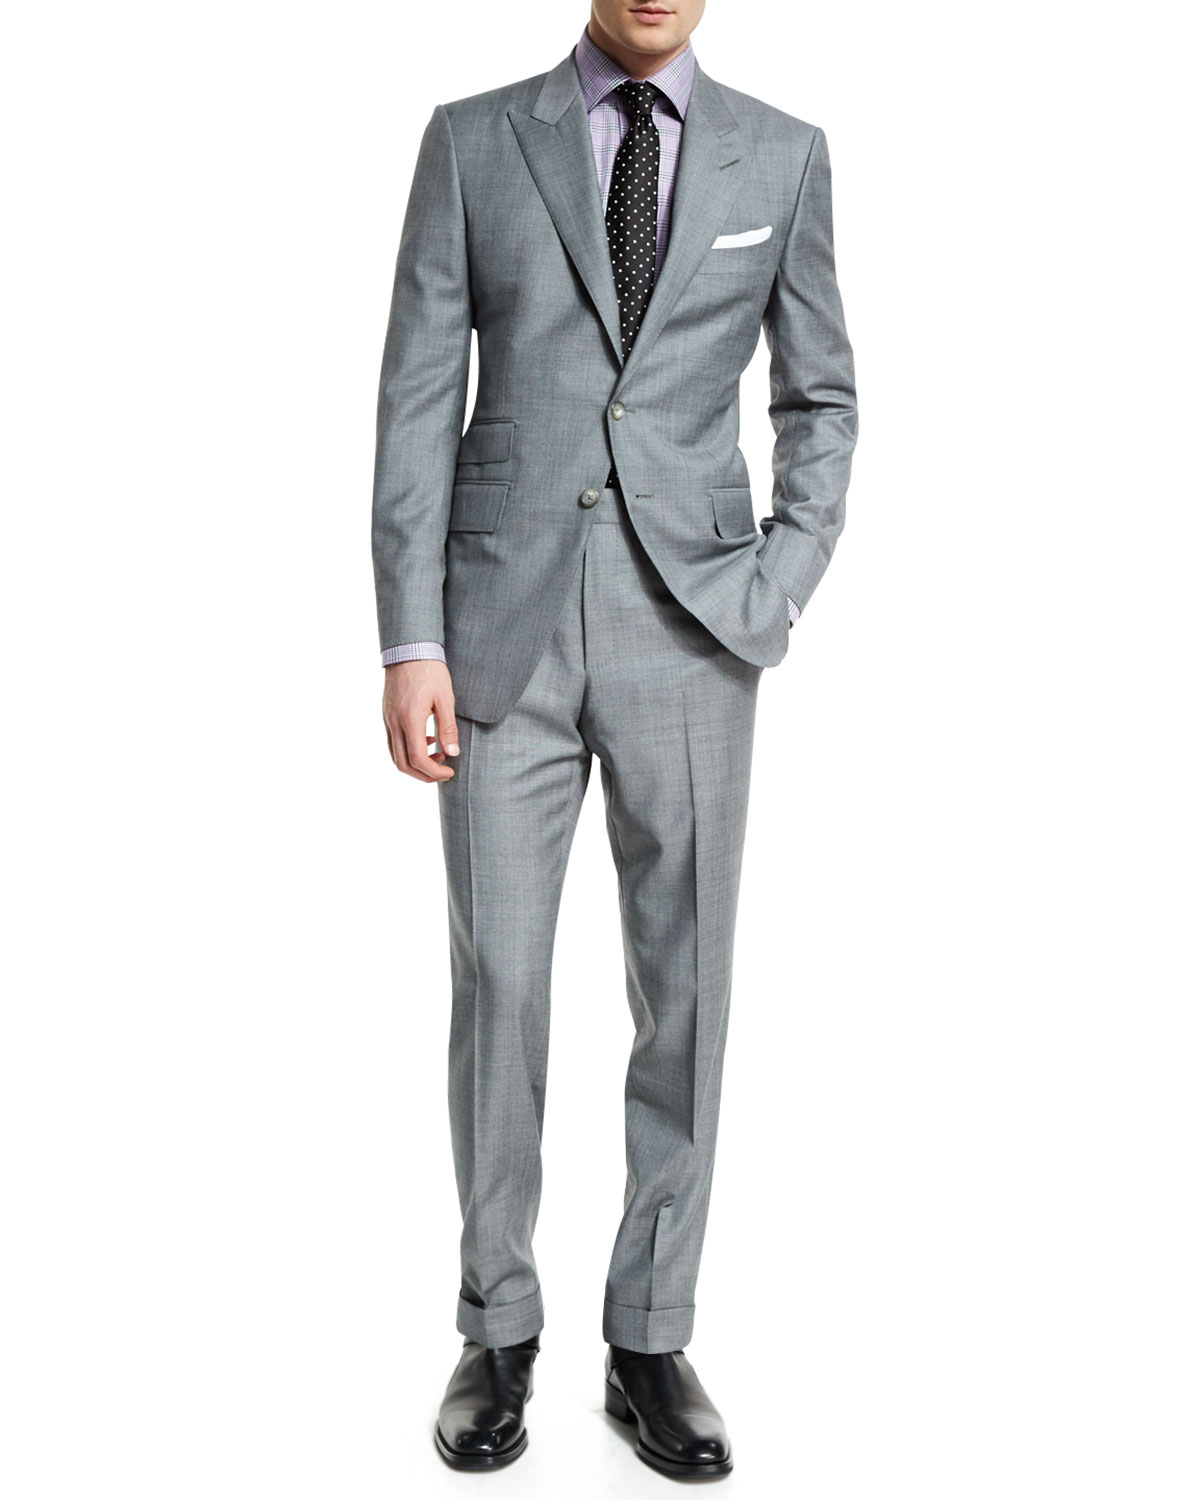 TOM FORD Ou2019Connor Base Sharkskin Two-Piece Suit : MALIBU MART